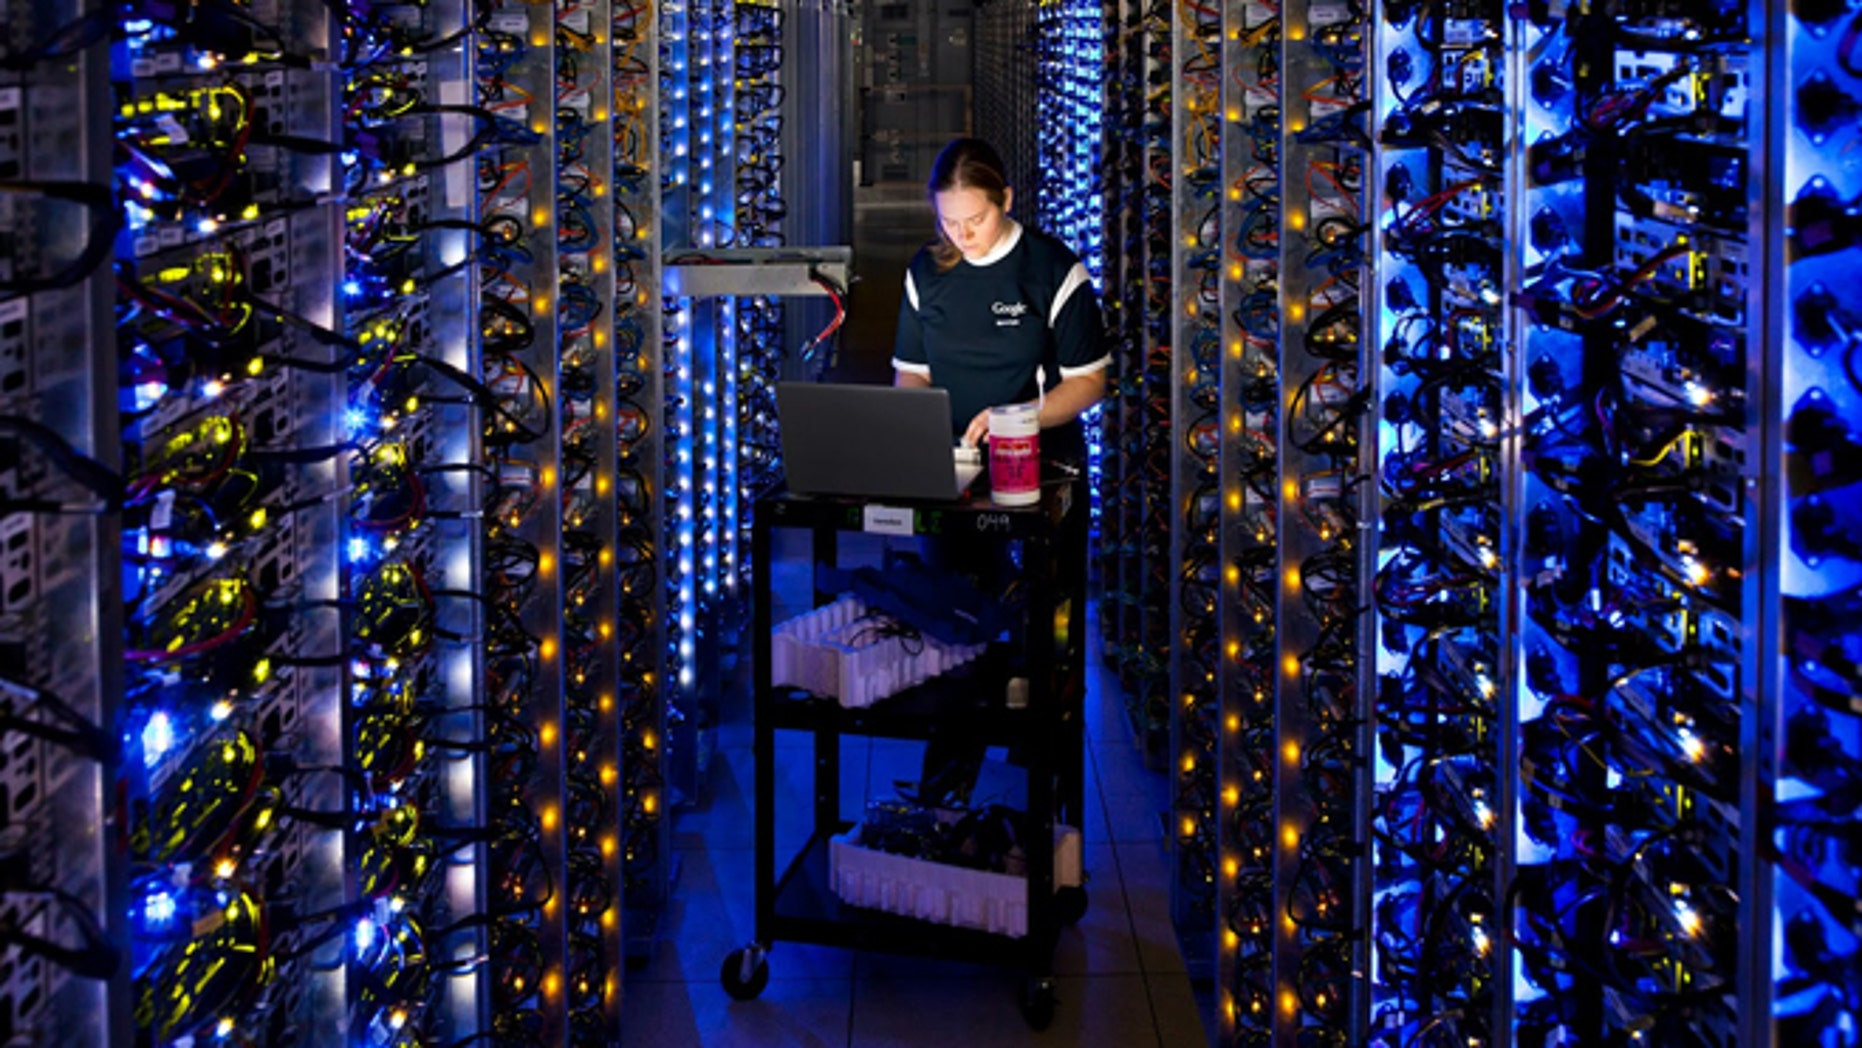 Denise Harwood diagnoses an overheated computer processor at Google's data center in The Dalles, Ore.